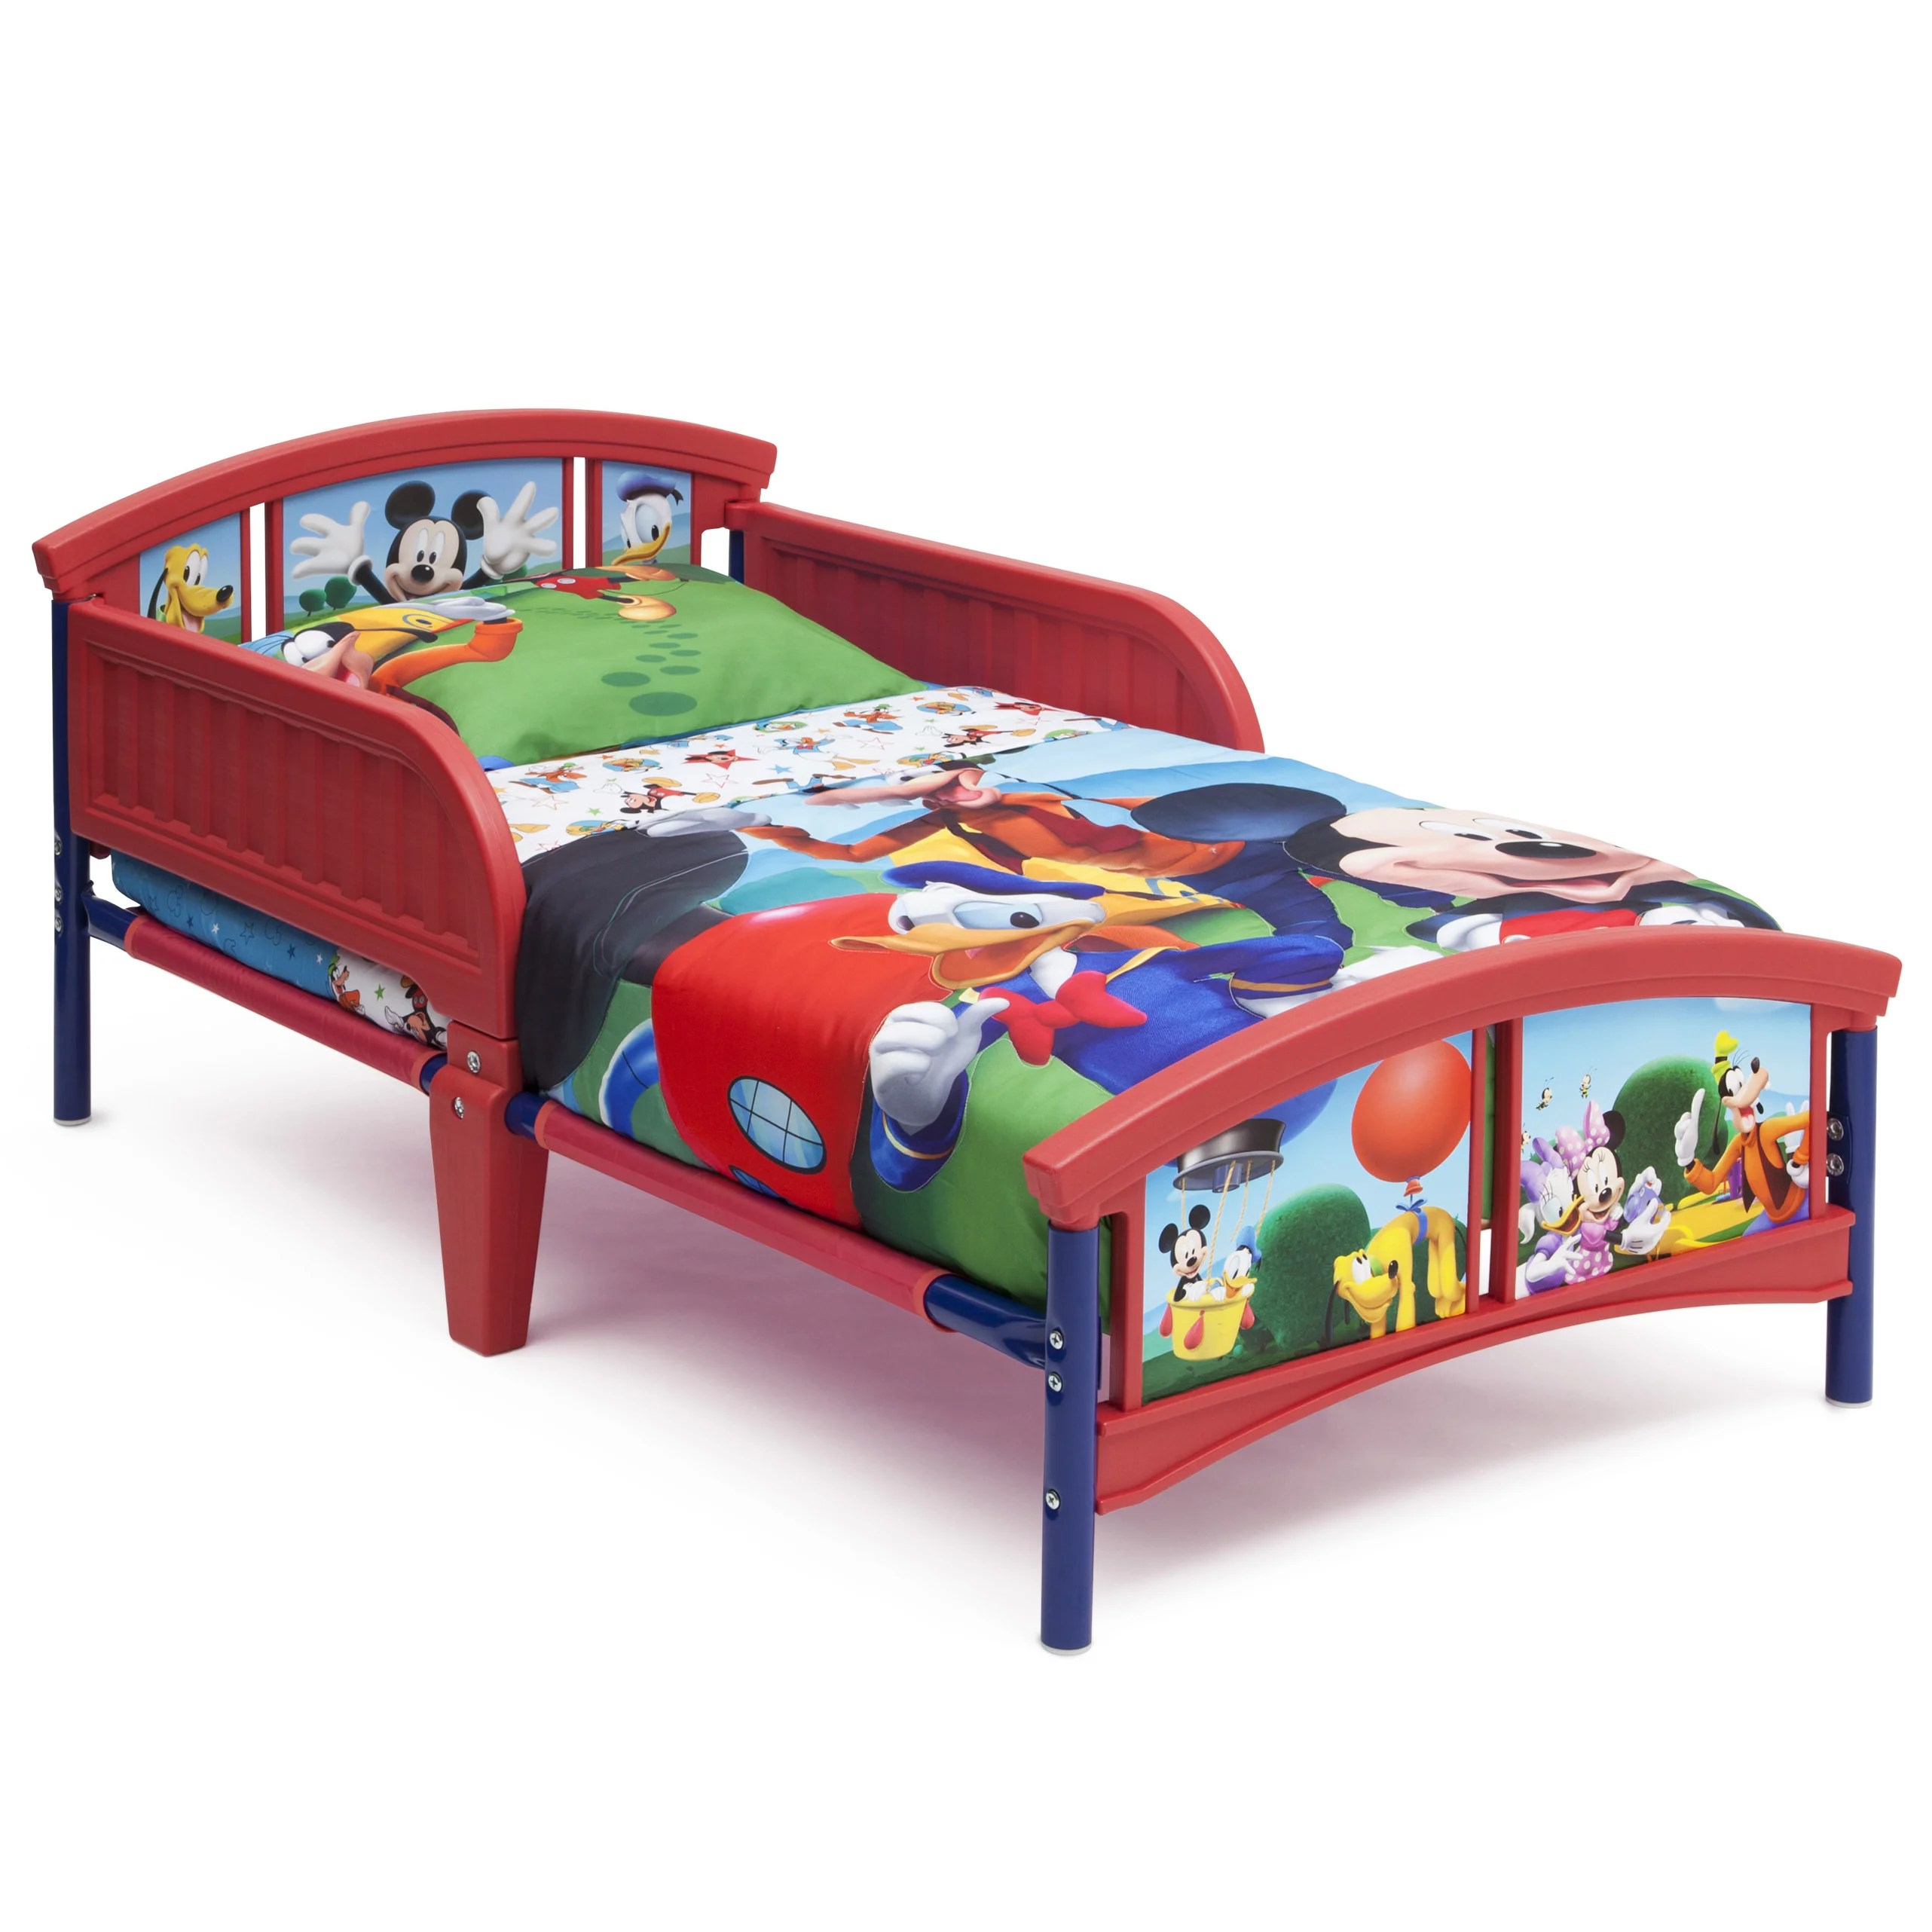 Mickey Mouse Chairs For Toddlers Delta Children Disney Mickey Mouse Plastic Toddler Bed Multiple Forms